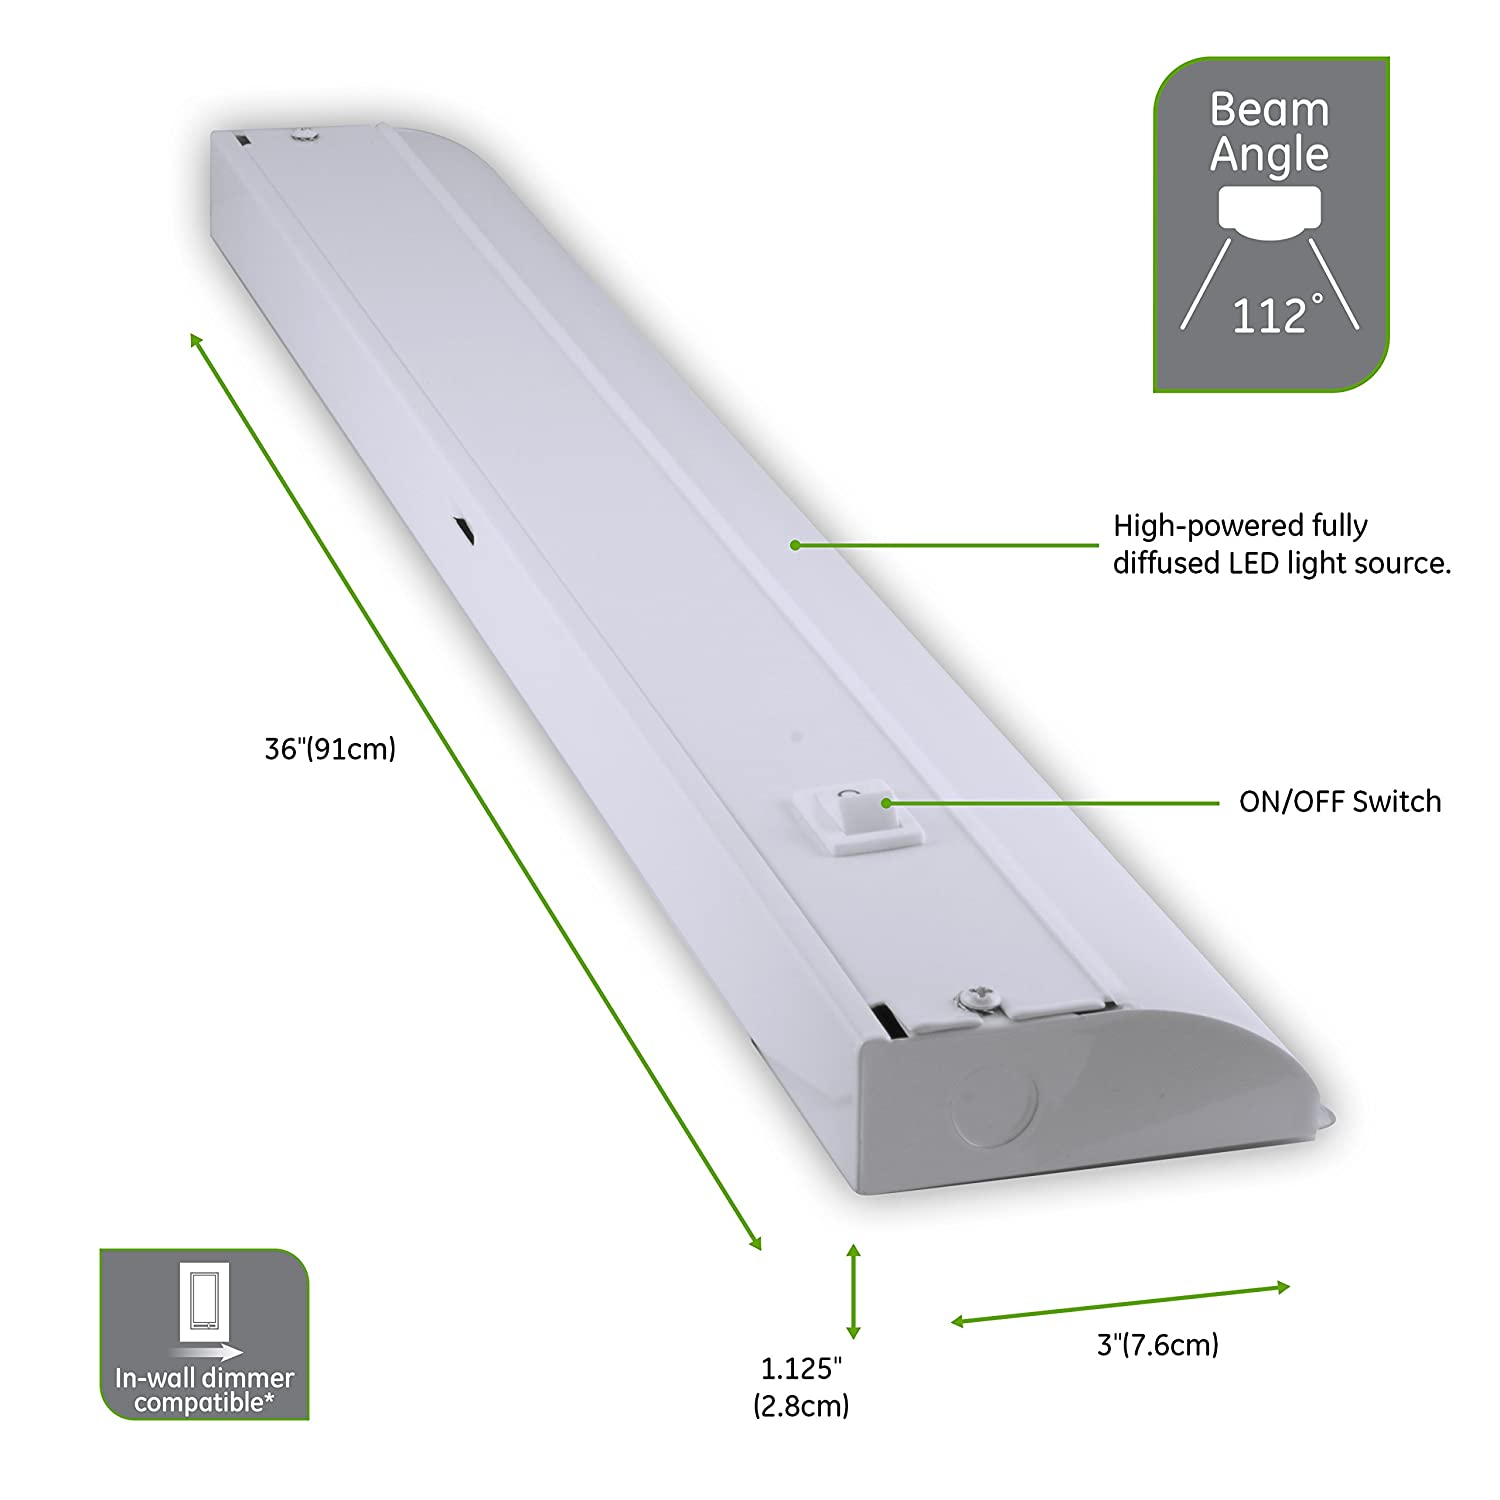 29434 Jasco Home /& Garden Direct Wire Steel Housing GE 36 Inch Premium Front Phase LED Under Cabinet Light Fixture 3000K Bright White 1366 Lumens In-Wall Dimmer Compatible Crafts /& Hobbies